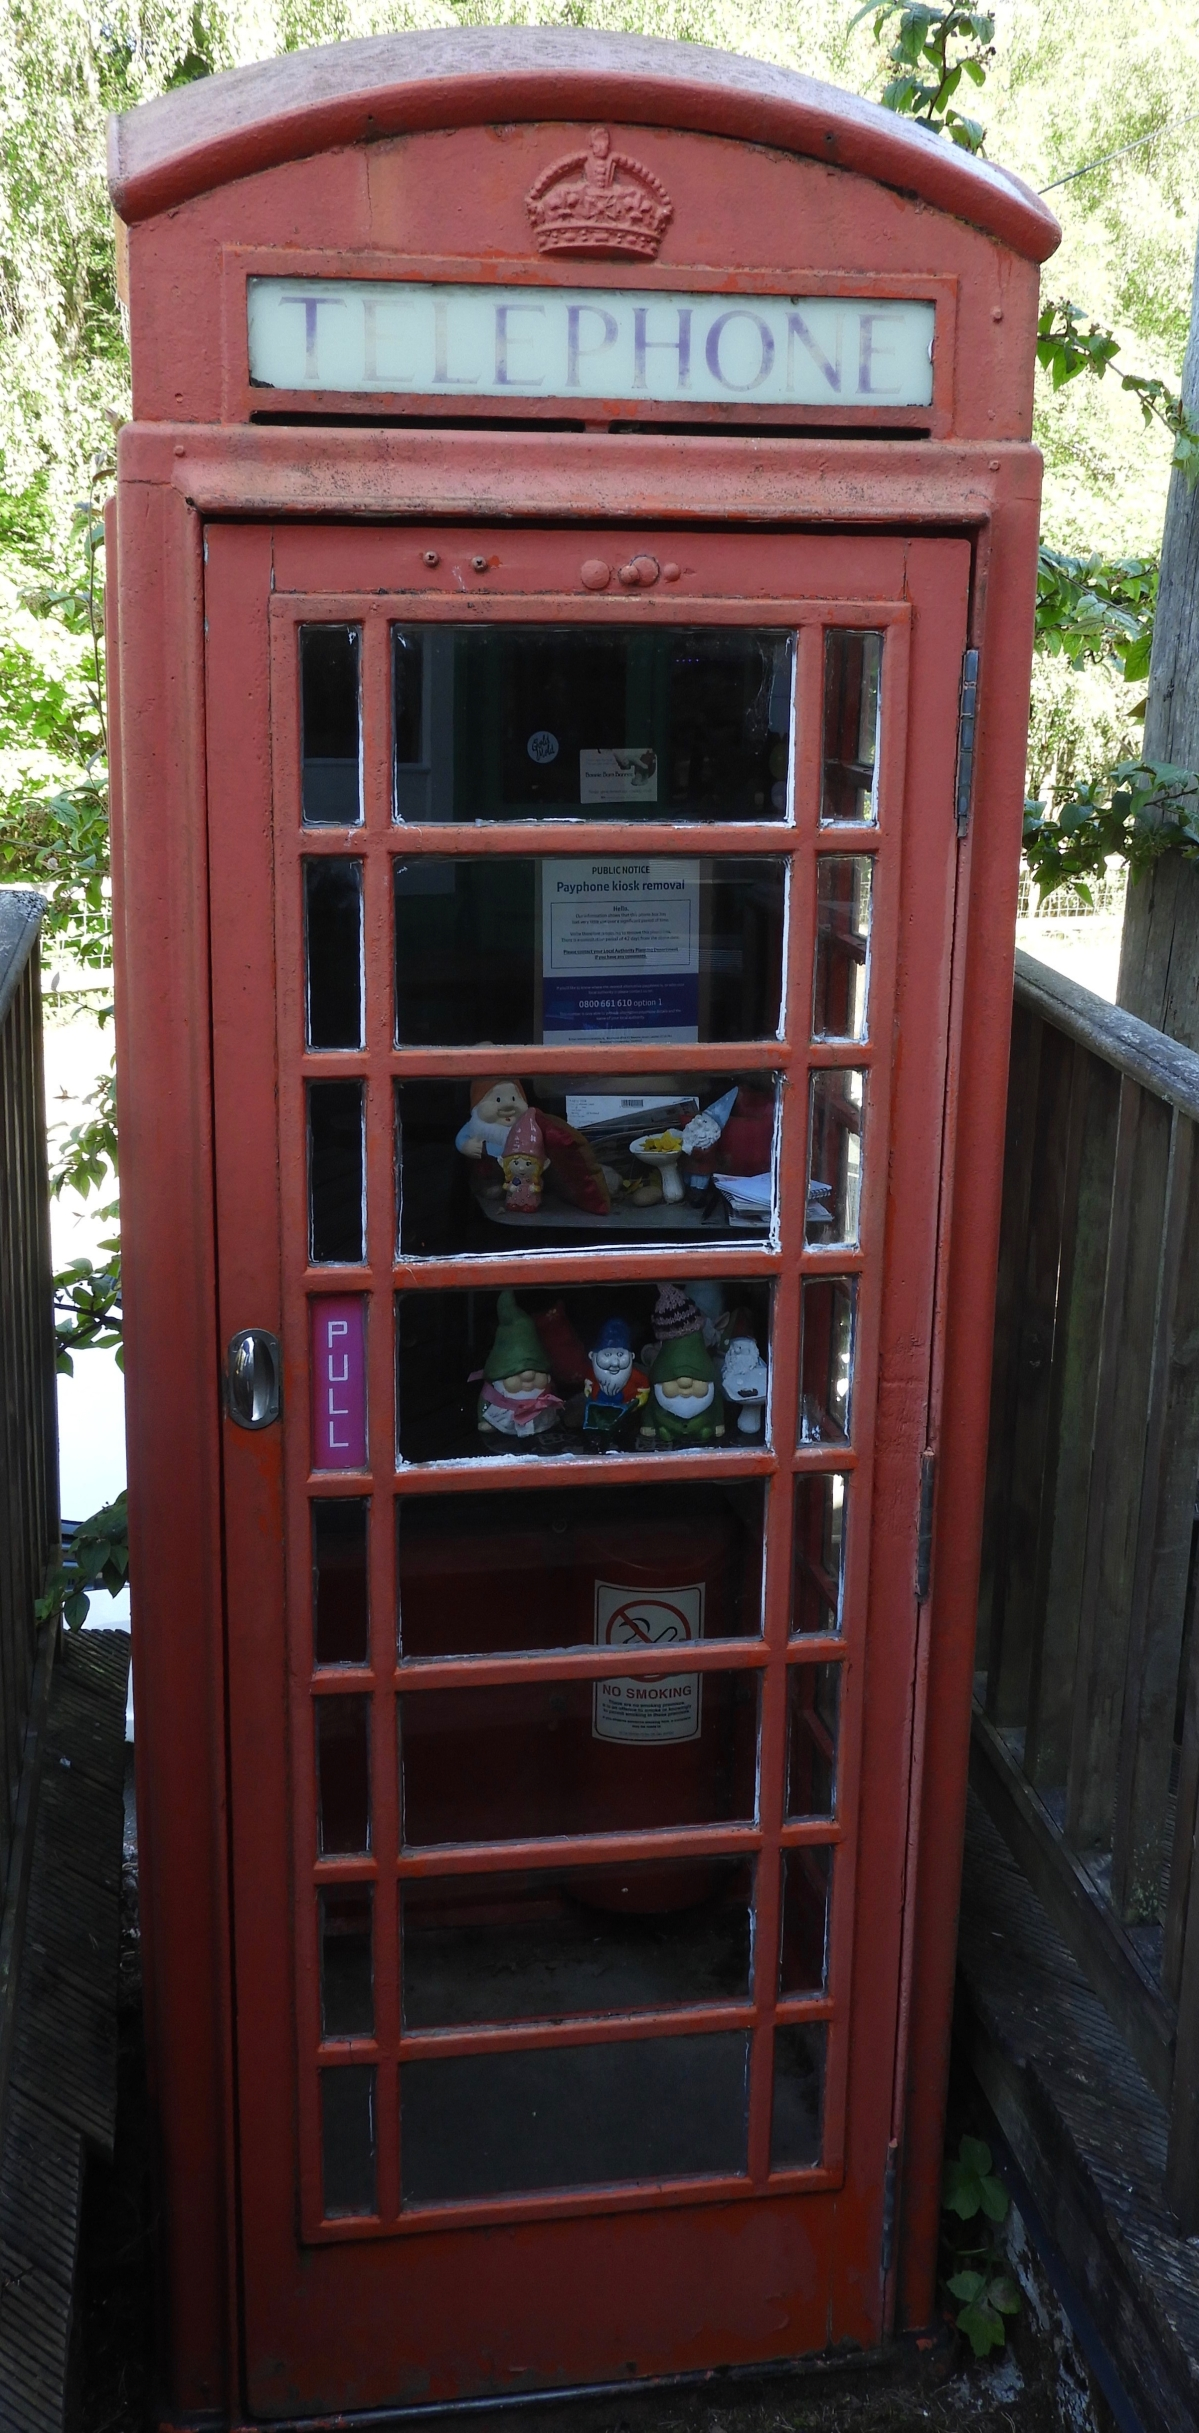 Foyers Telephone booth